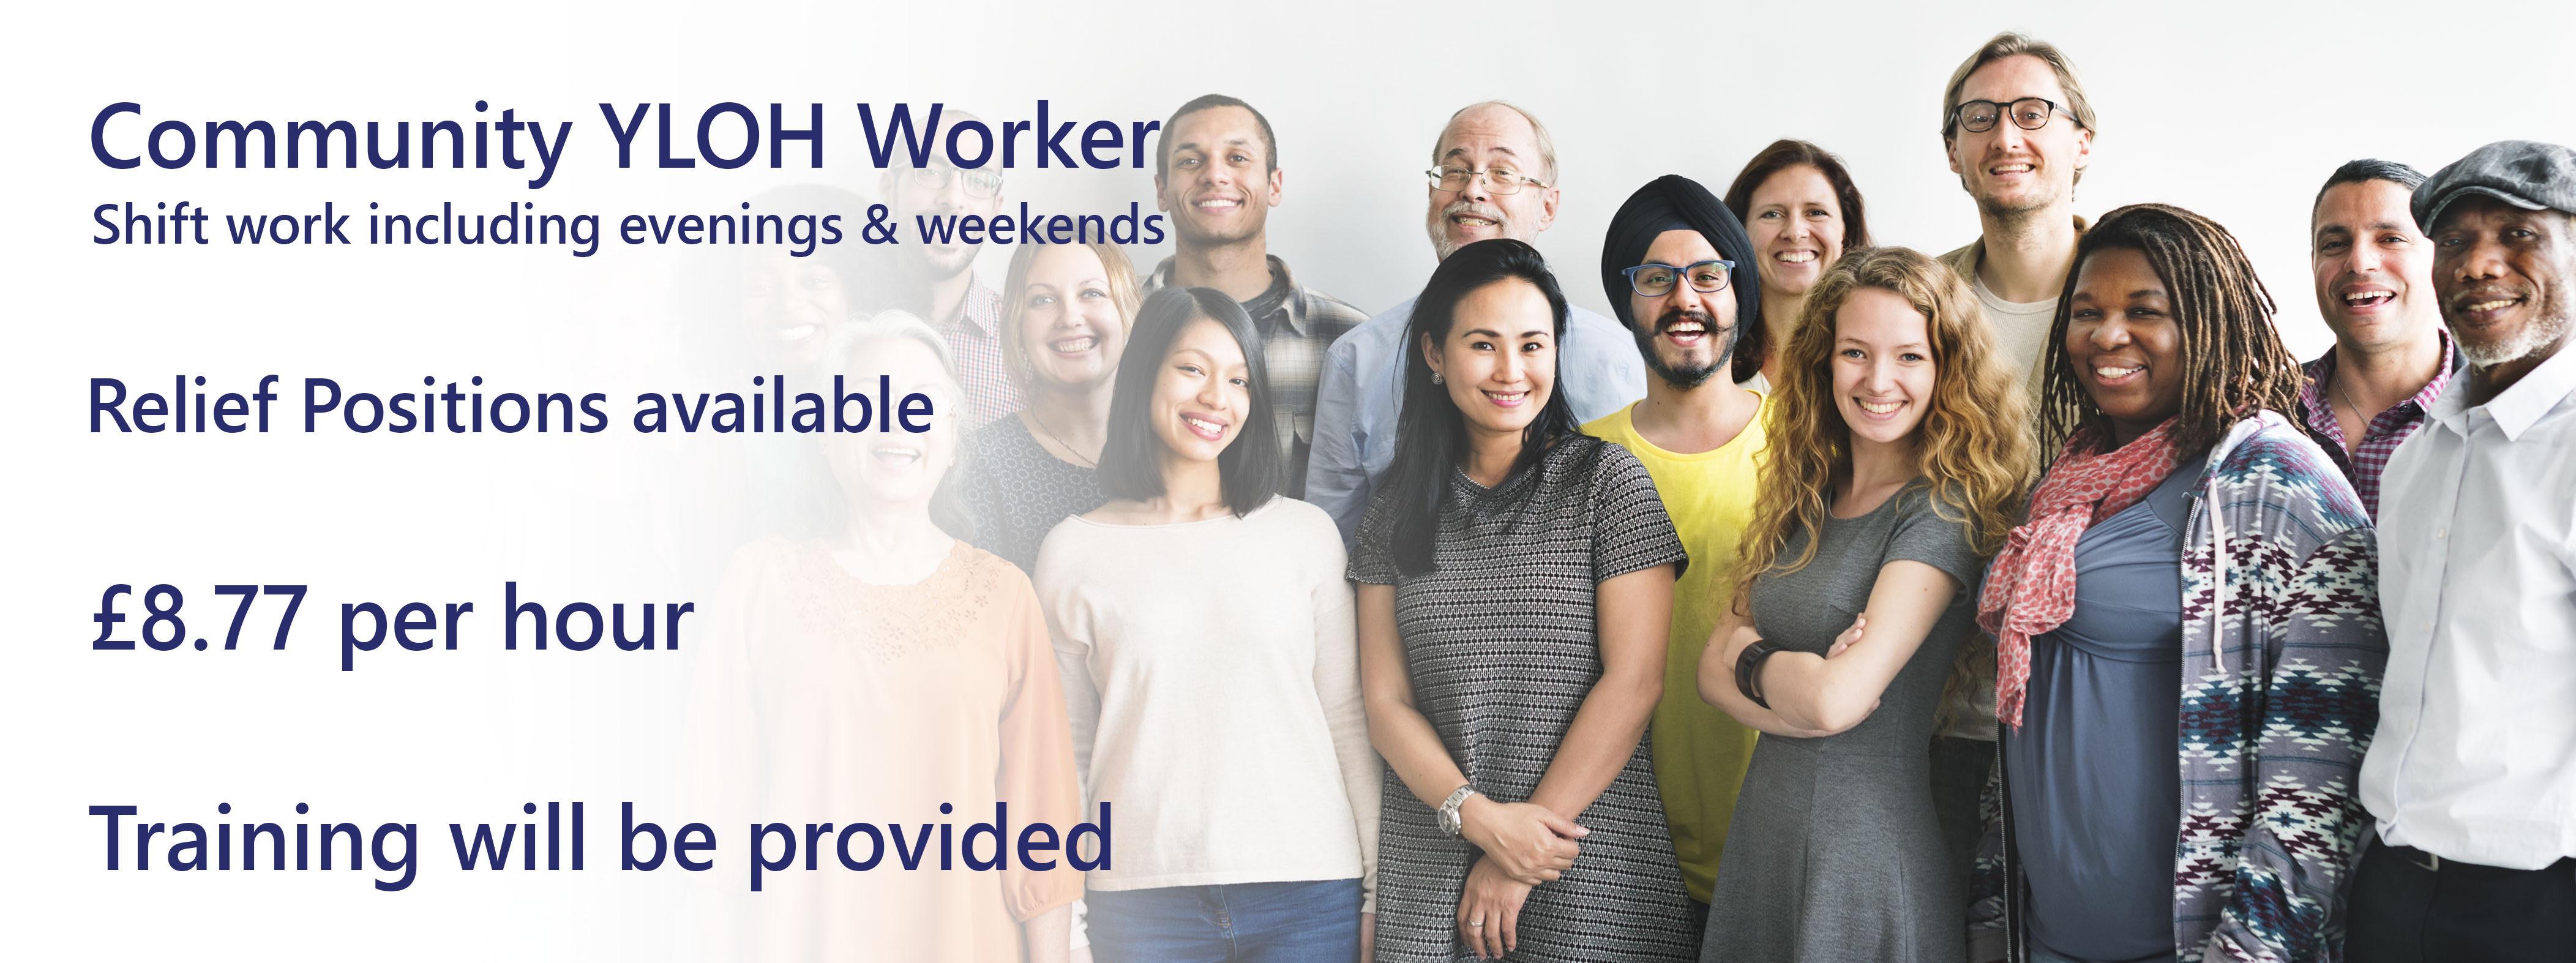 community yloh worker page header WS